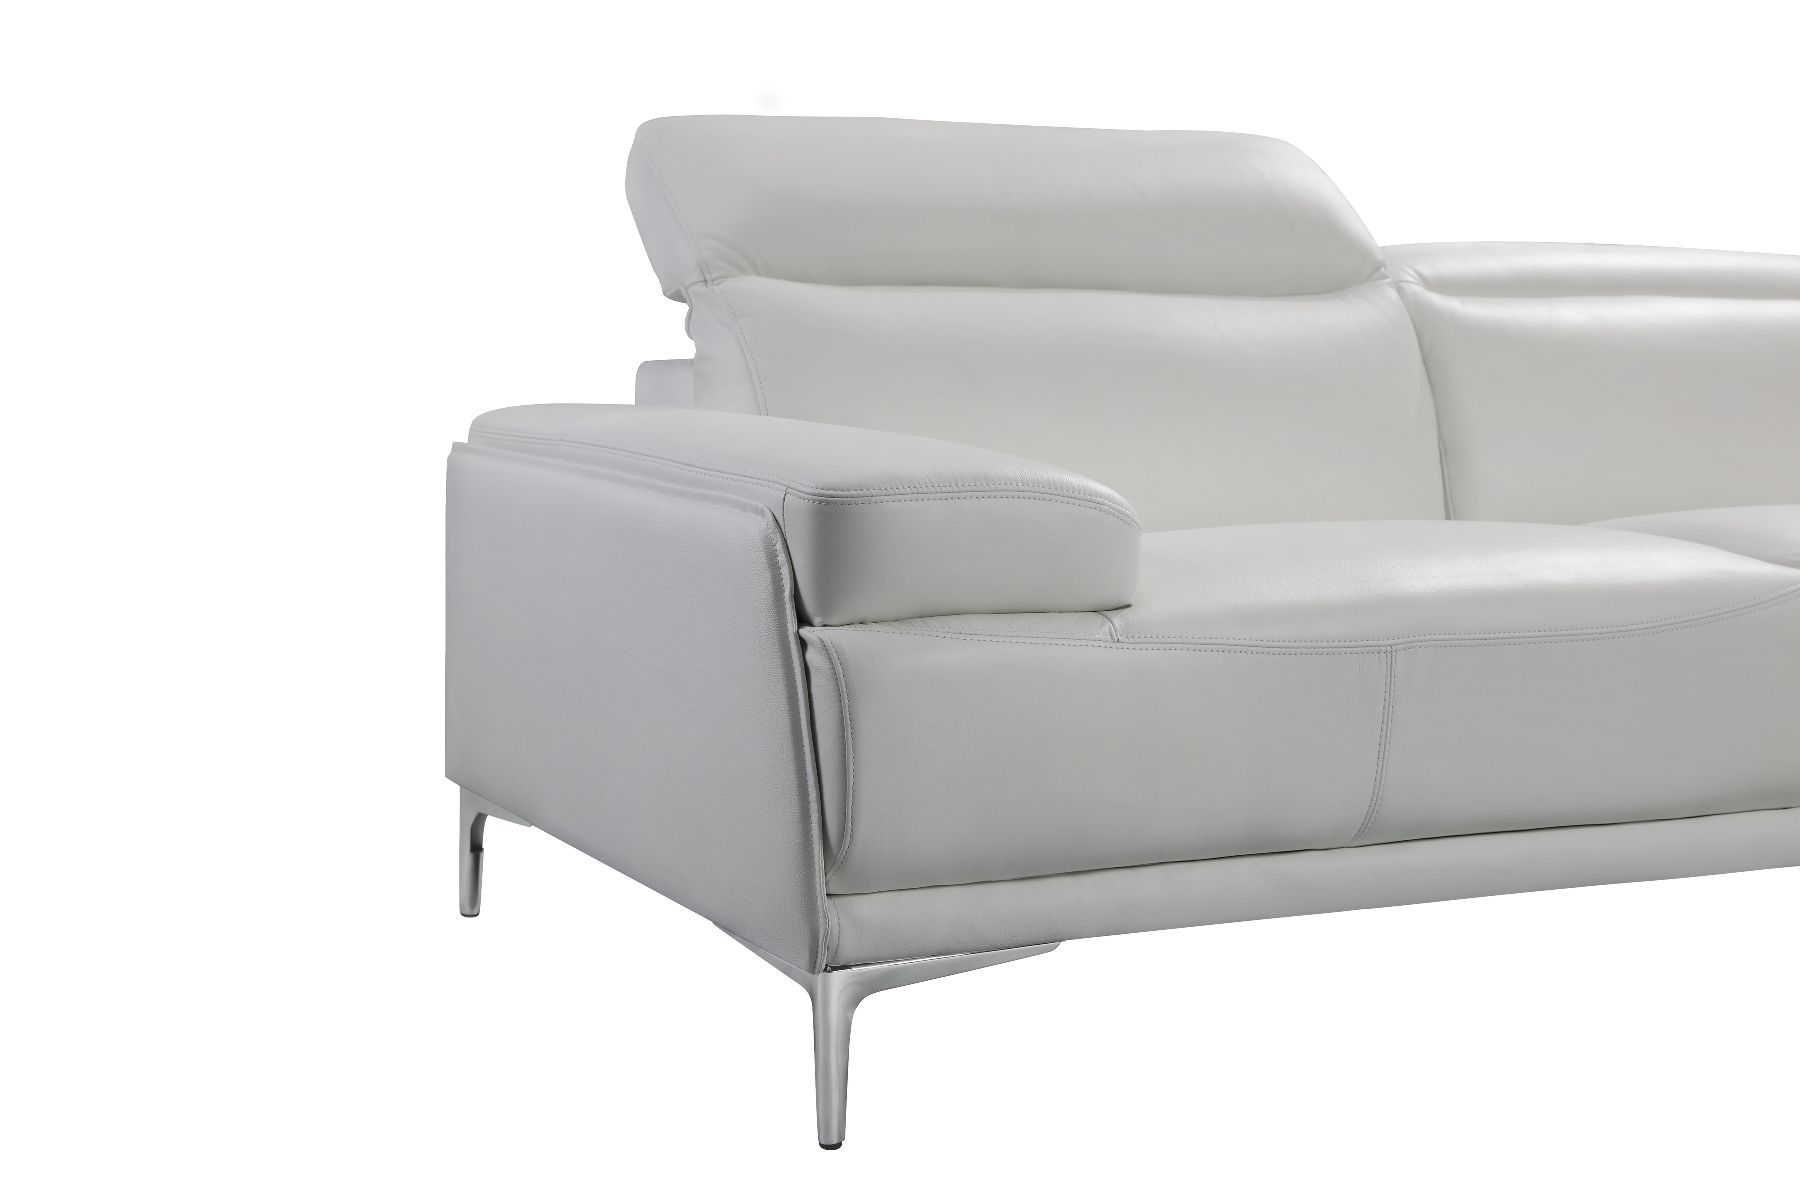 J M Nicolo White Modern Stylish Adjustable Headrest Leather Sofa In 2020 White Leather Sofas Leather Sofa Set Leather Sofa